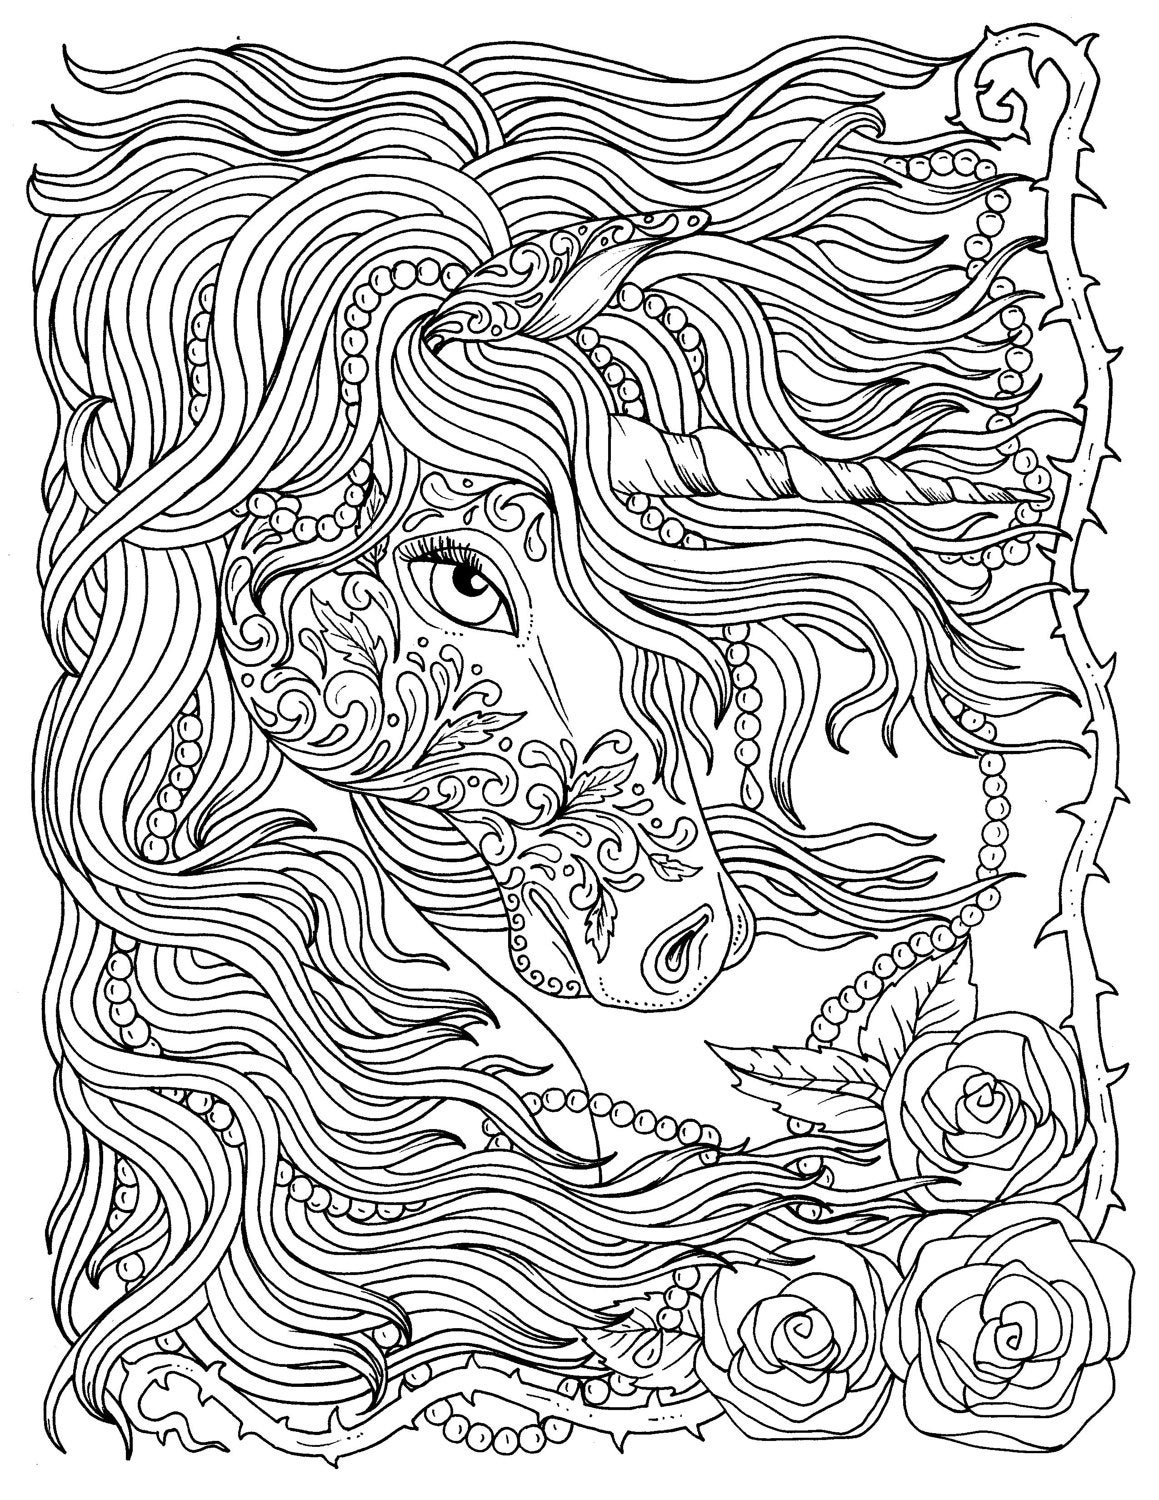 Unicorn and Pearls Fantasy Coloring Page Adult Coloring | Etsy